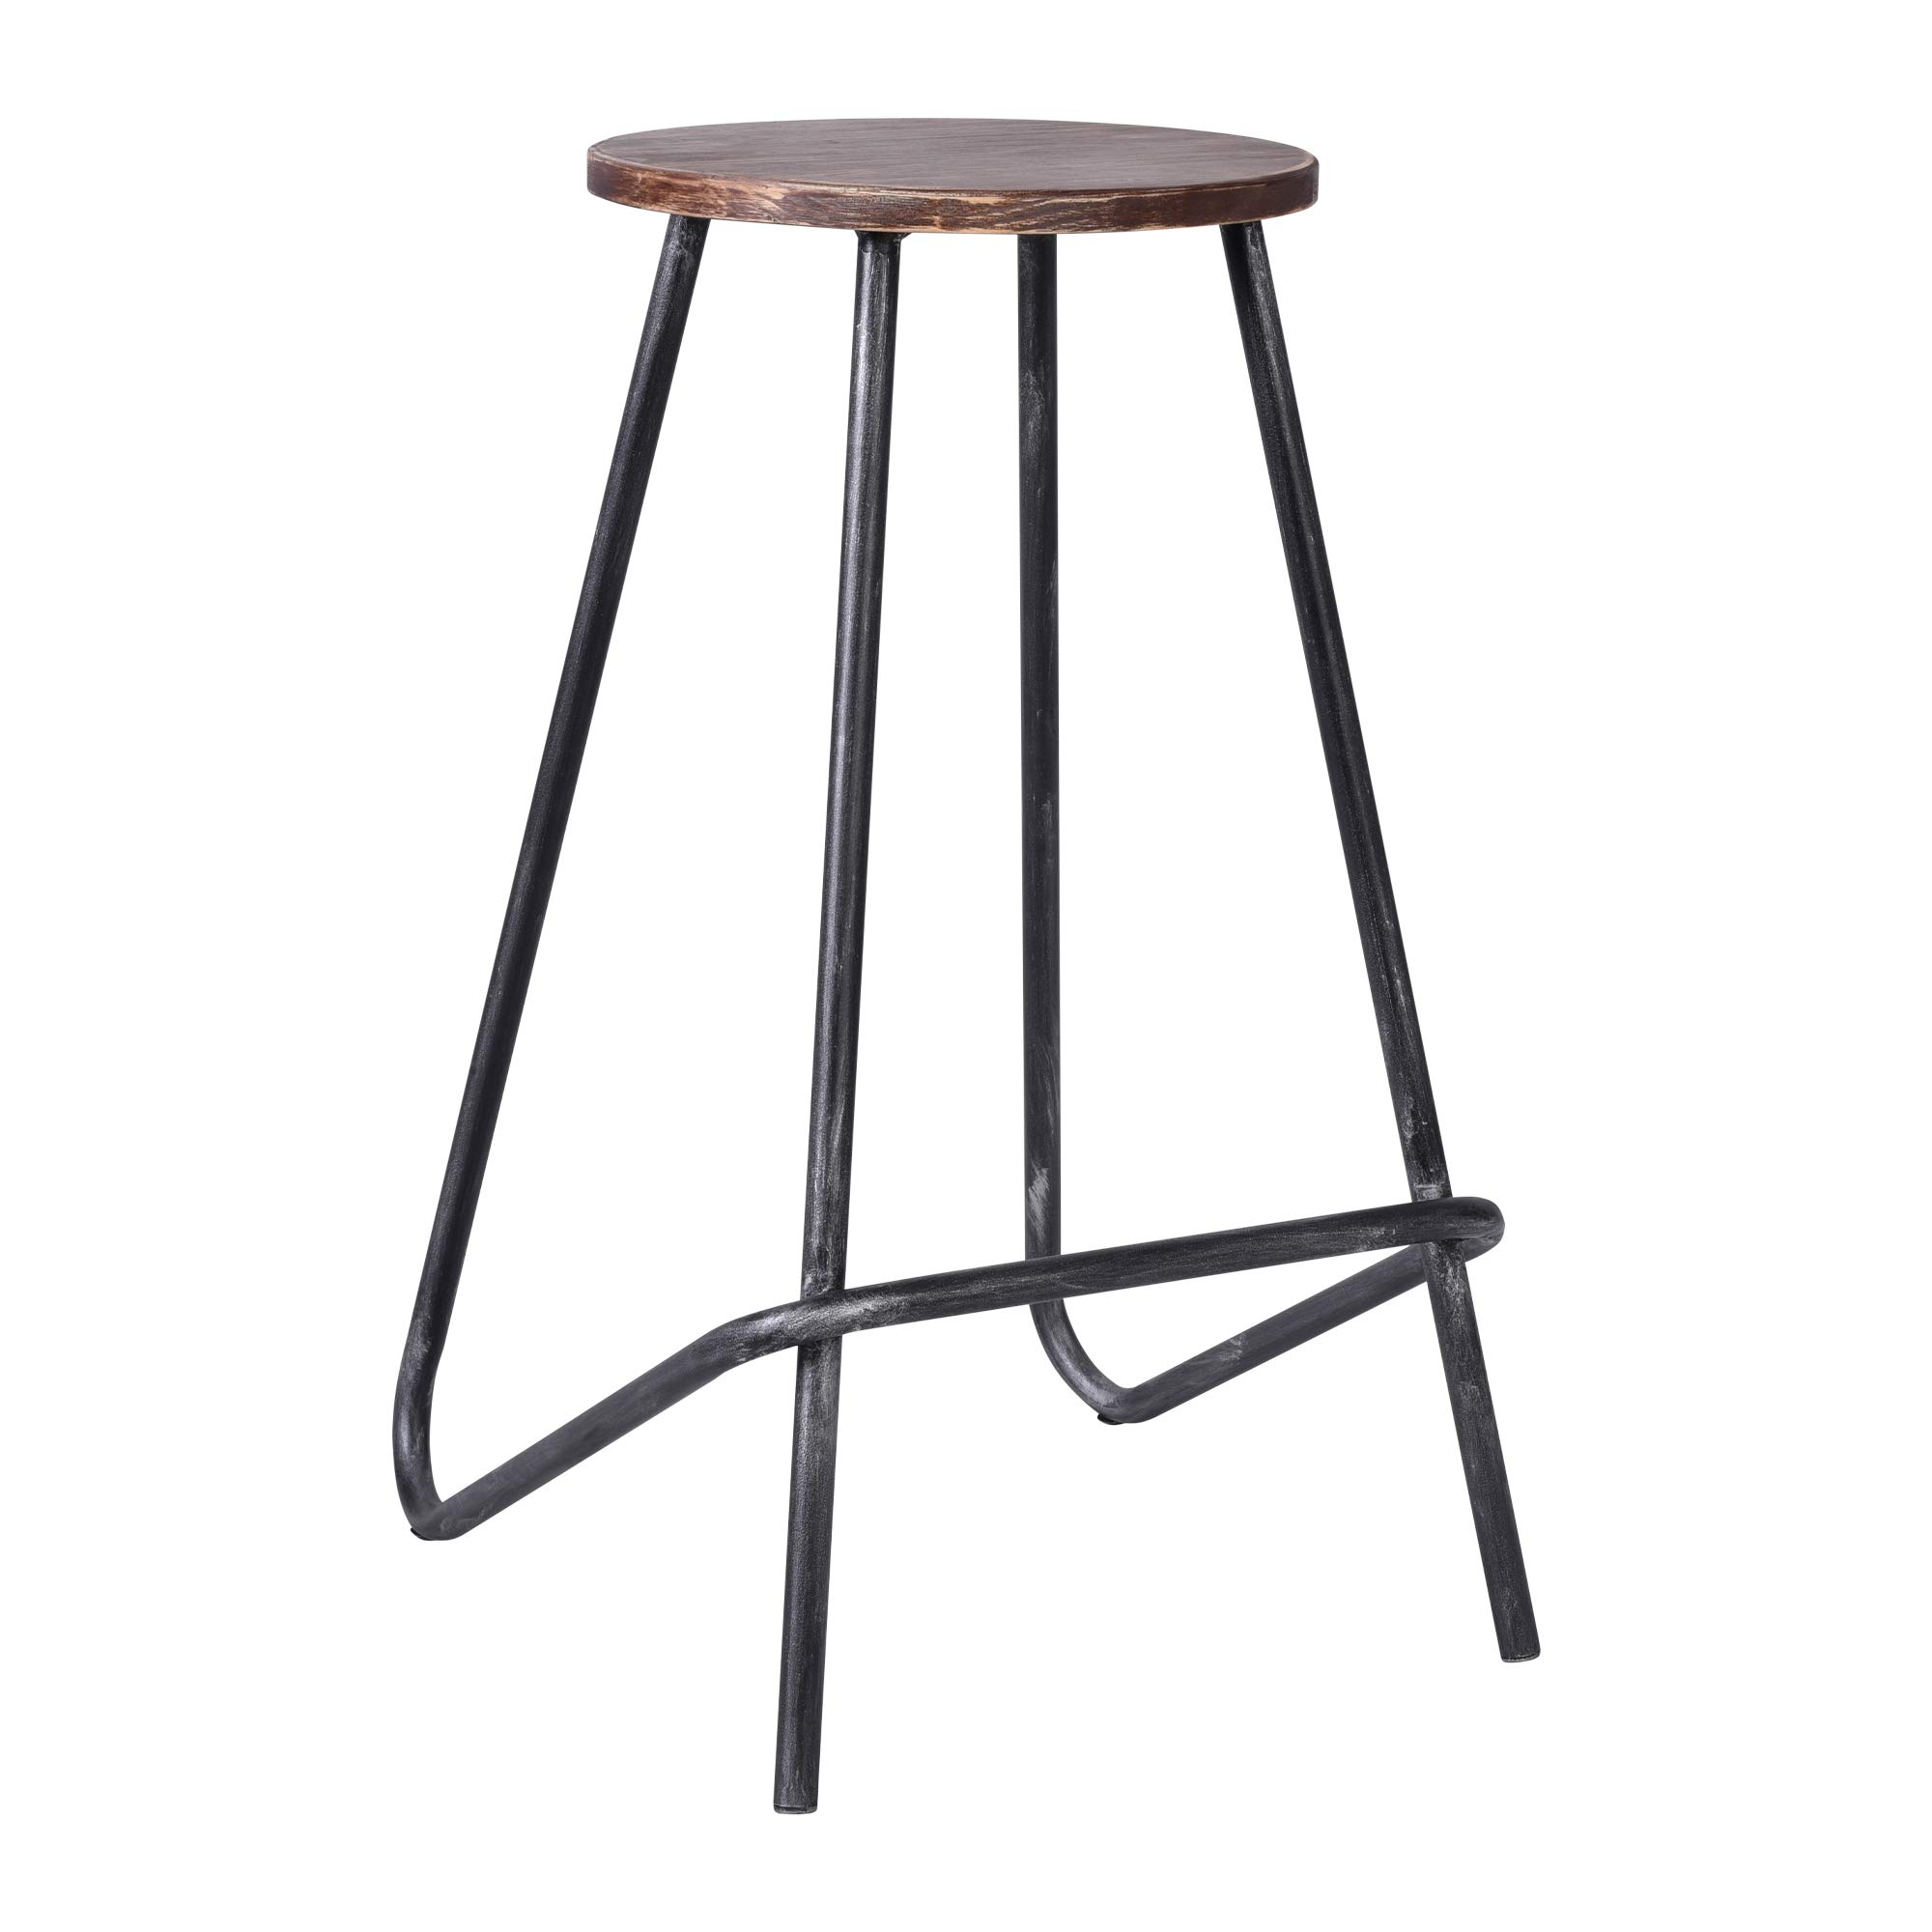 Today's Mentality Elise Industrial Backless Metal Barstool in Silver Brushed Gray with Rustic Pine Wood Seat